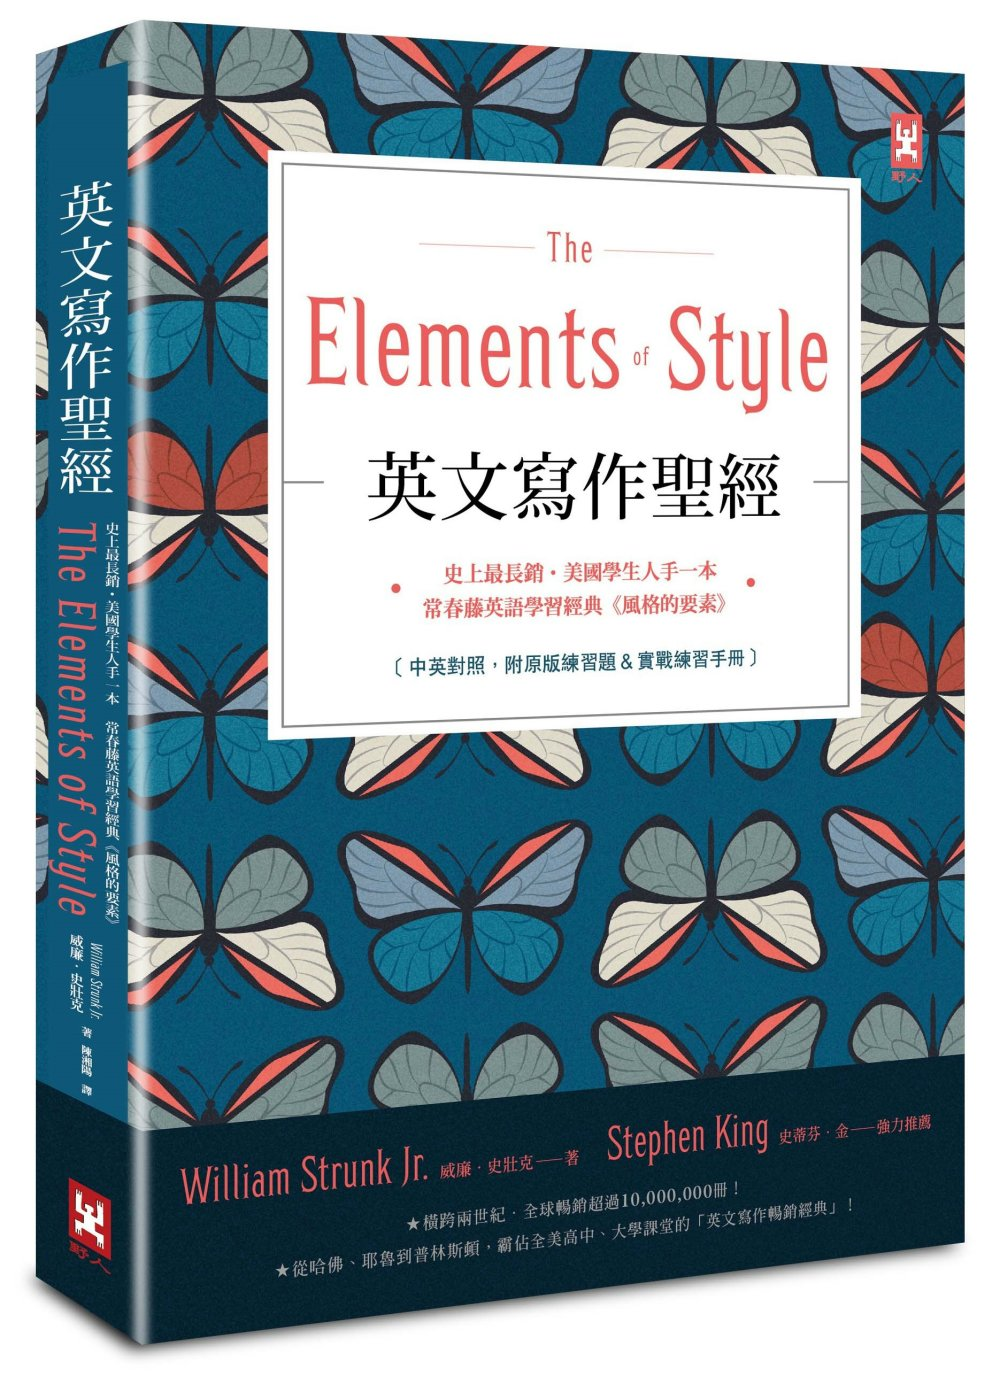 英文寫作聖經《The Elements of Style》:史上最長銷、美國學生人手一本、常春藤英語學習經典《風格的要素》(中英對照,附原版練習題)【隨書贈】英文寫作必備‧實戰練習手冊